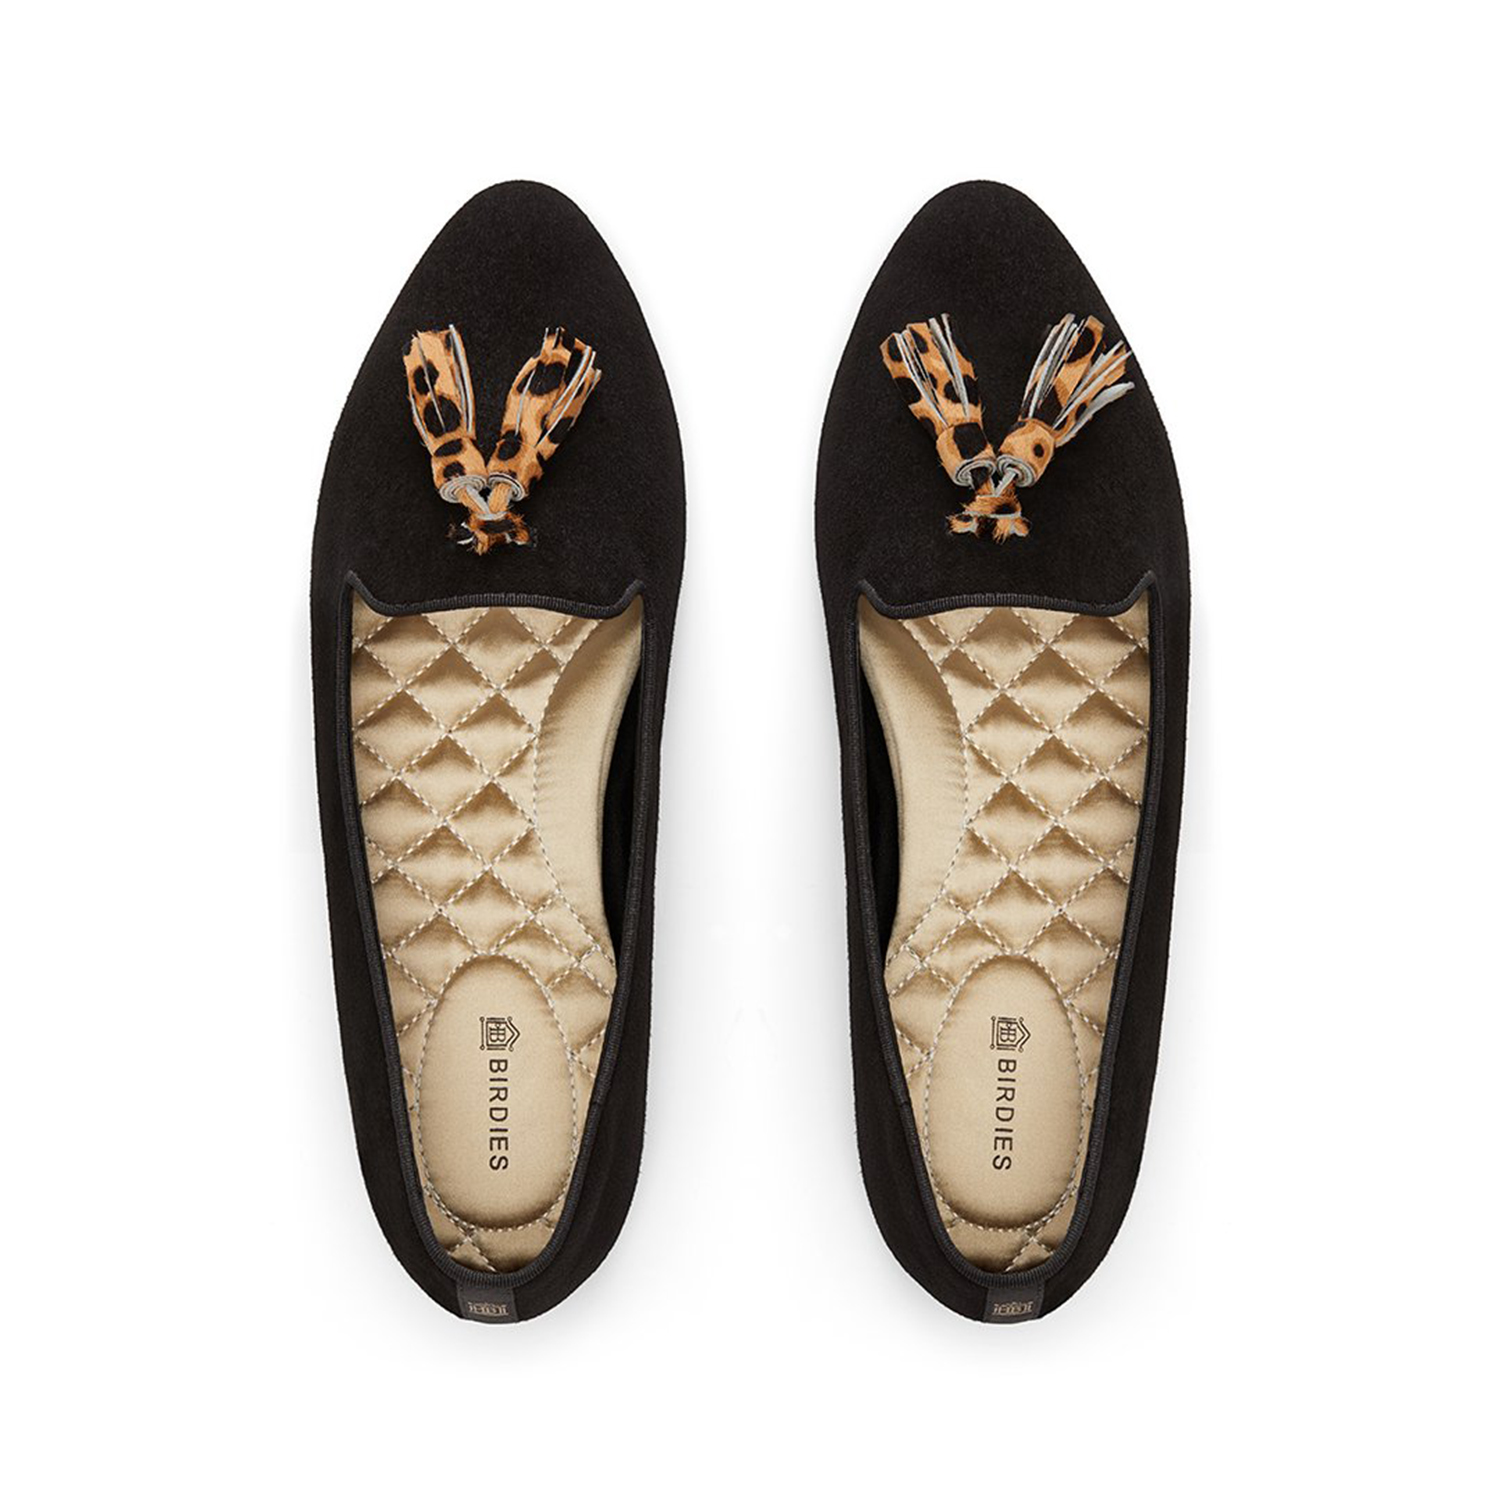 Birdies Calf Hair Flats